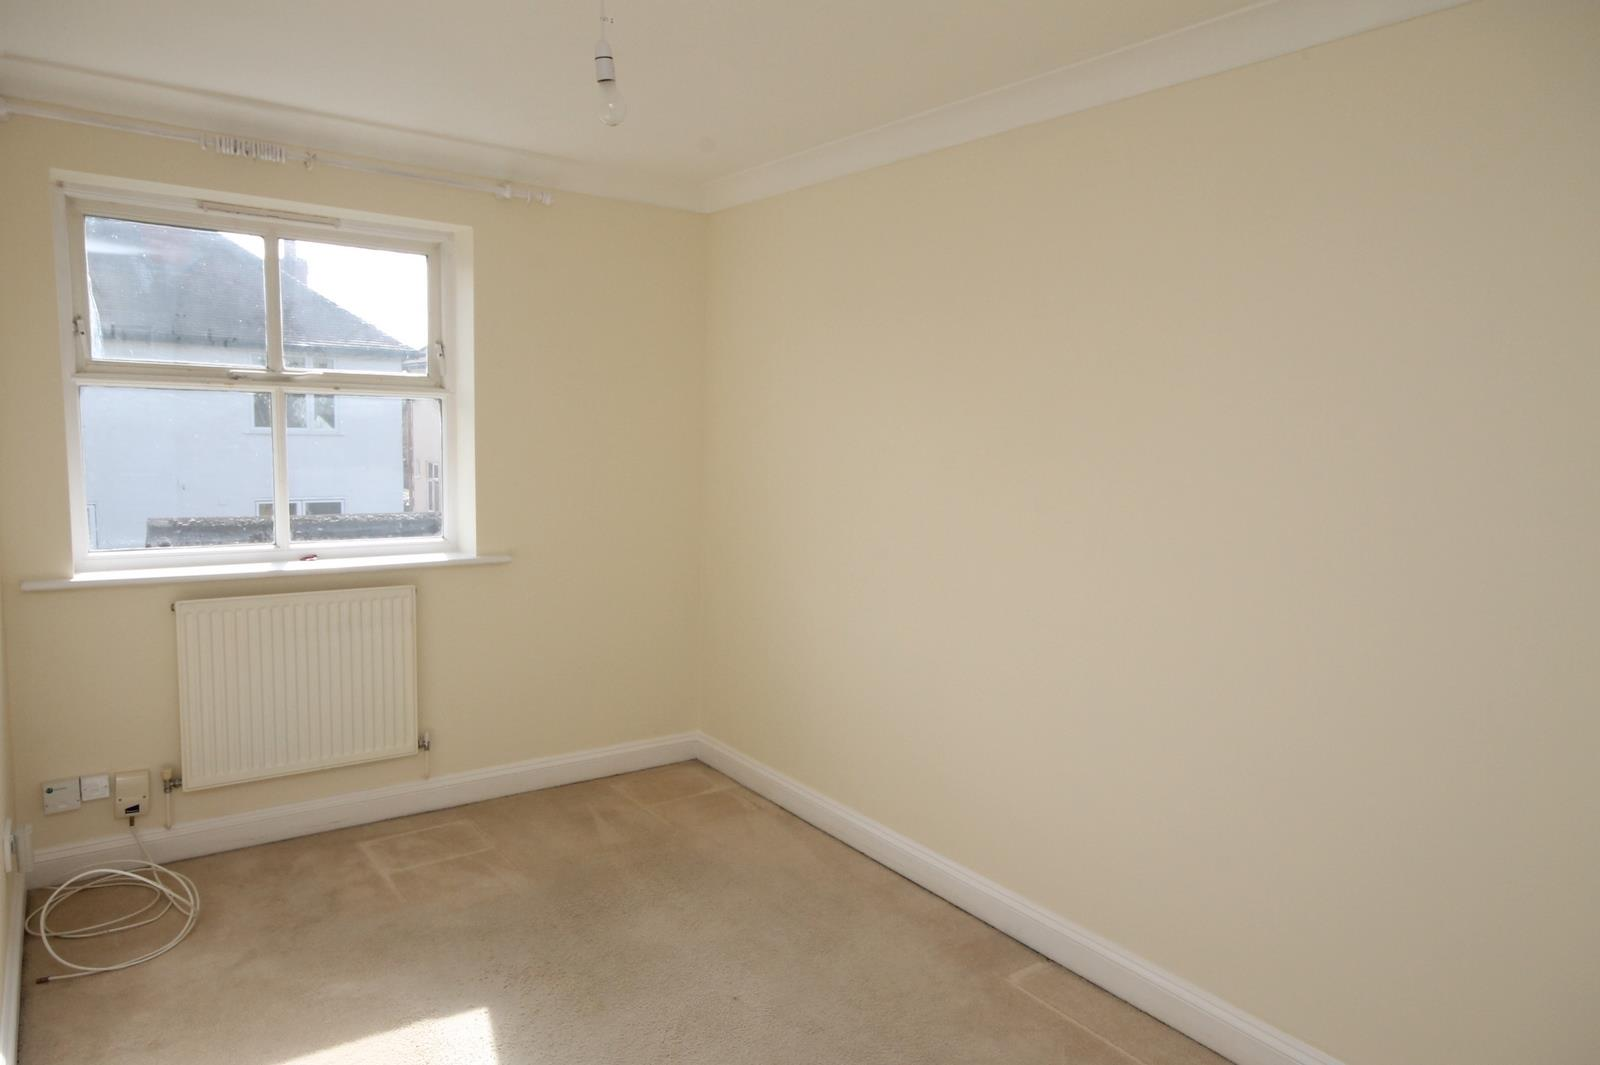 4 bed house to rent in Reedley Road, Bristol 6